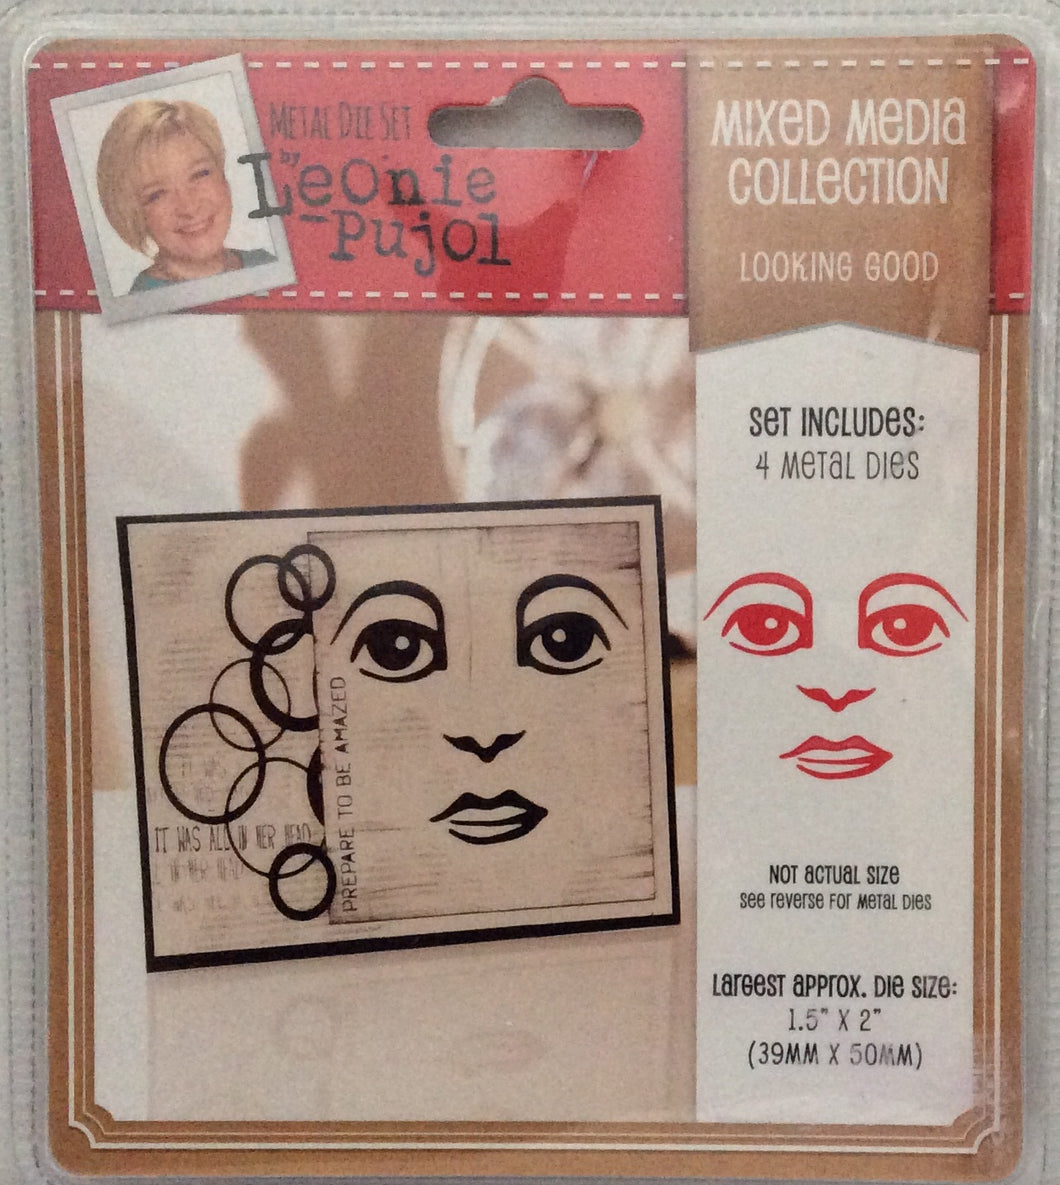 "Leonie Pujol Mixed Media Collection - Looking Good - 4 Metal Die Set 1.5""x 2"""